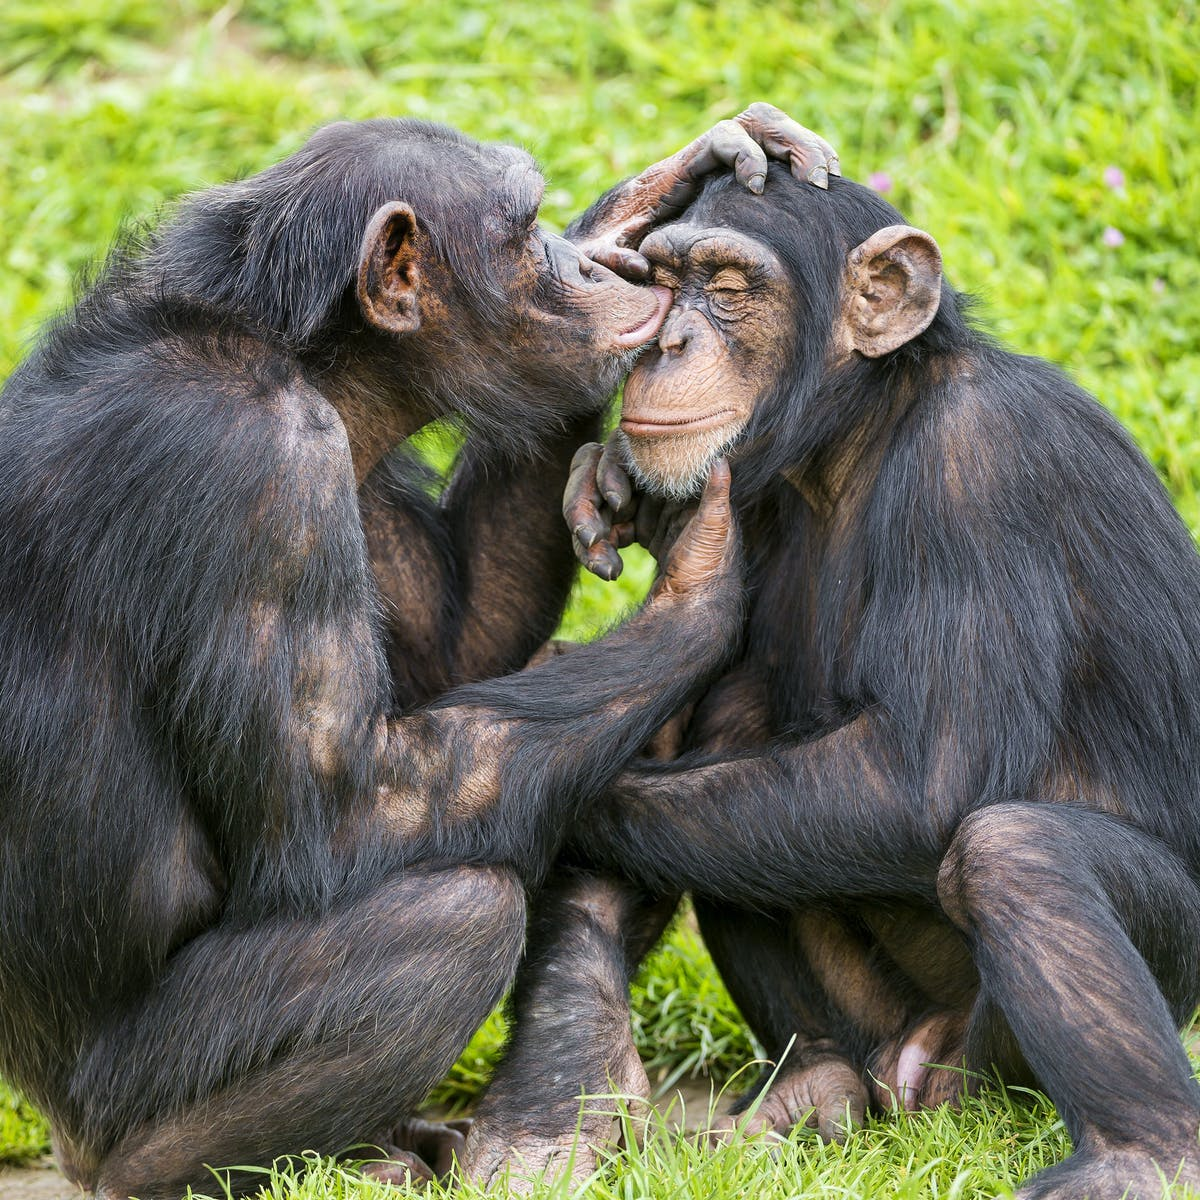 Chimpanzee Hoots and 'Copulation Screams' Reveal Roots of Human Language